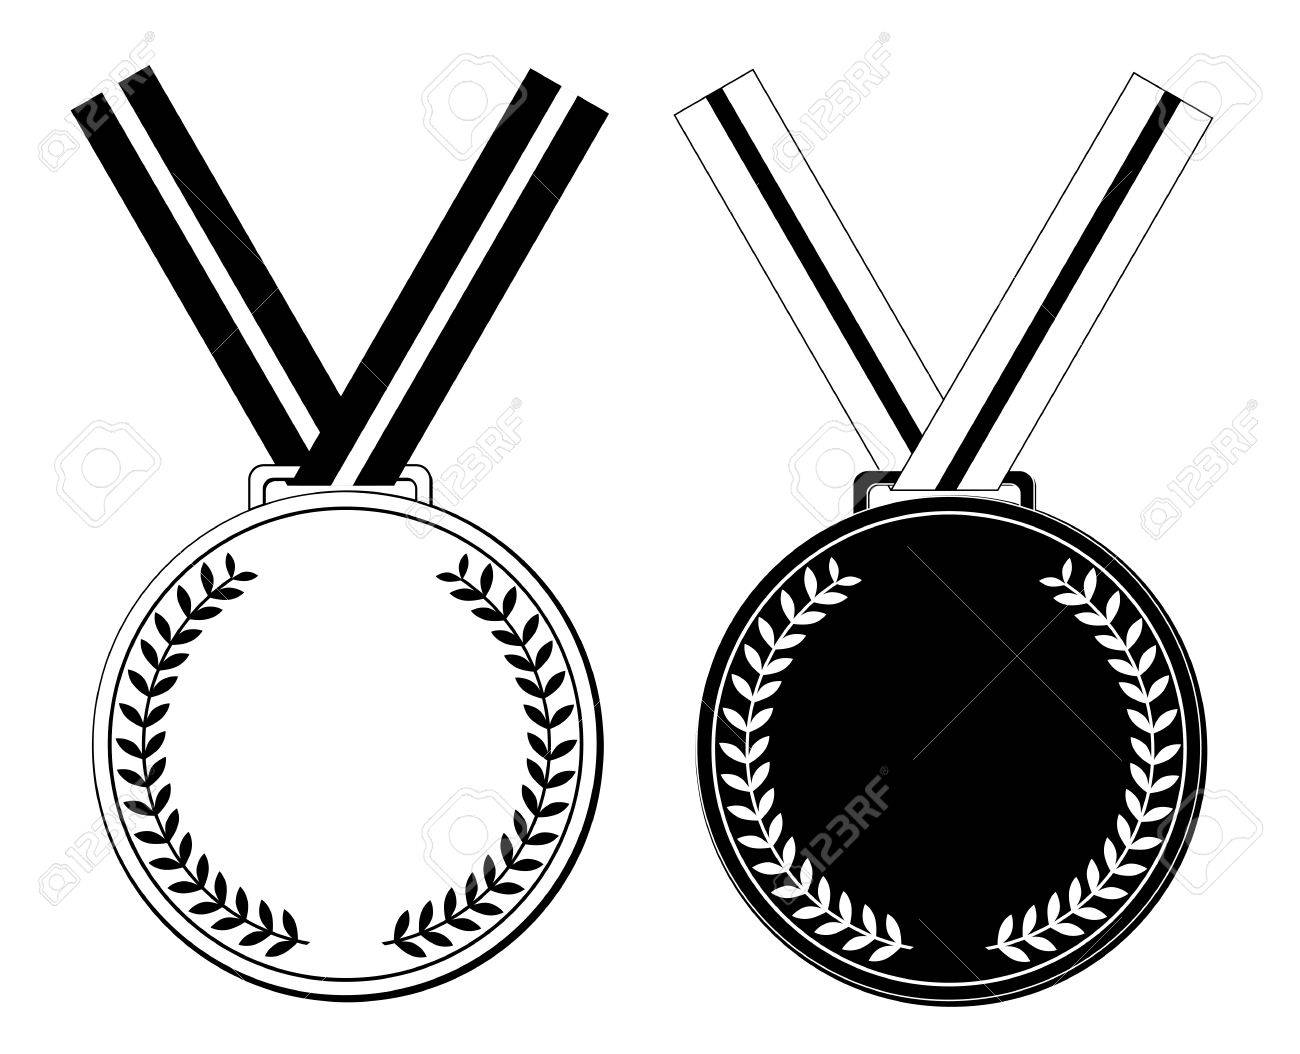 Clipart Black And White Medal.